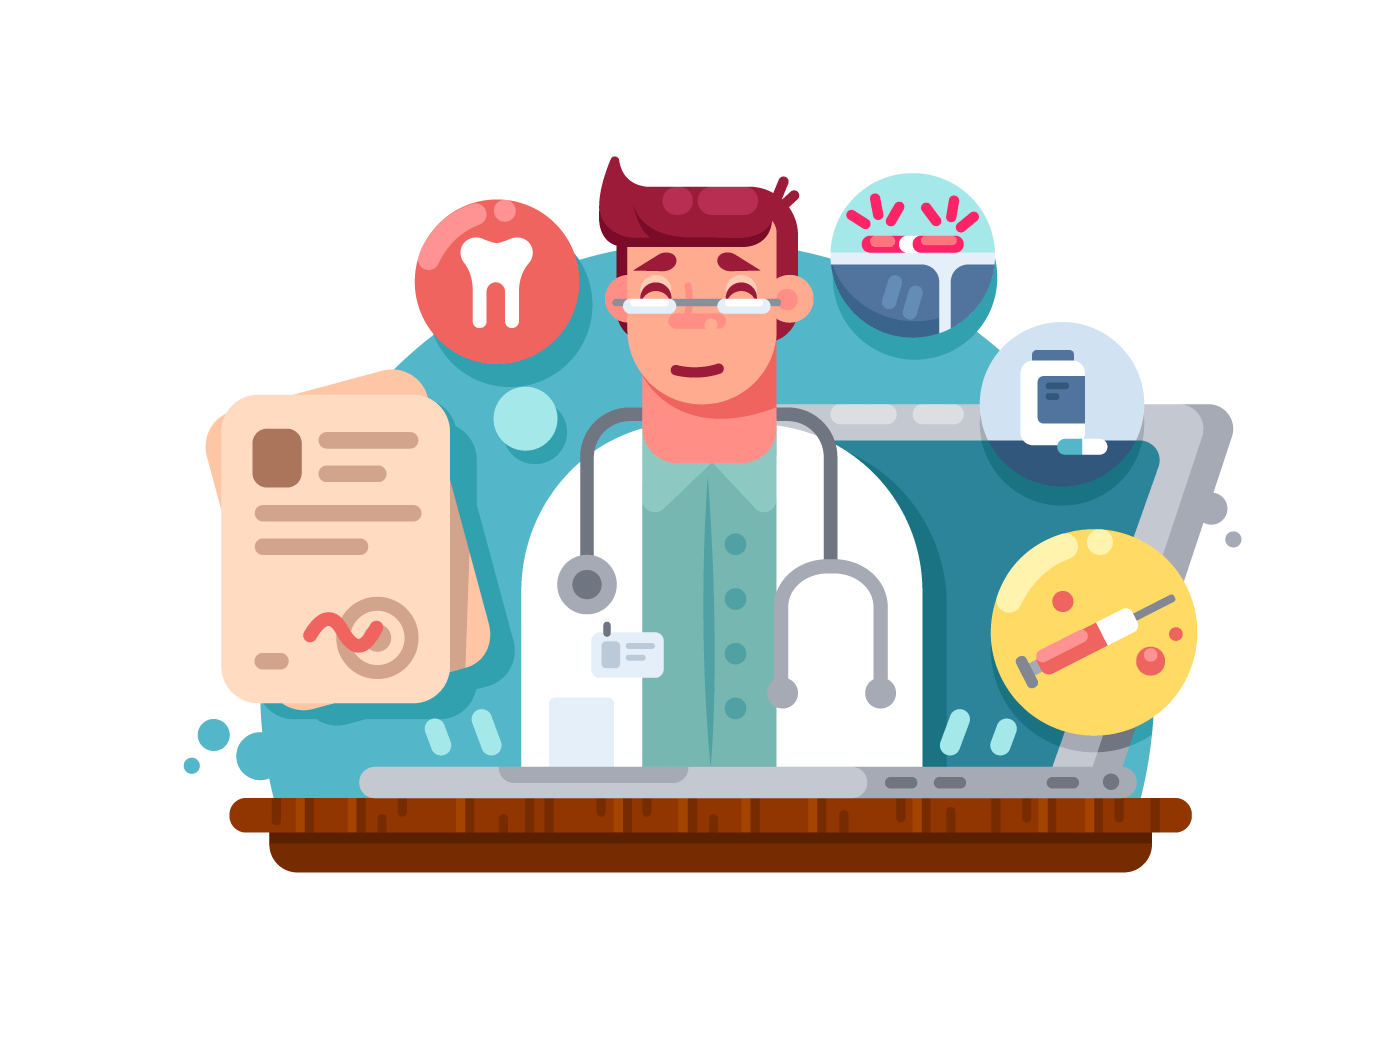 Service online doctor illustration